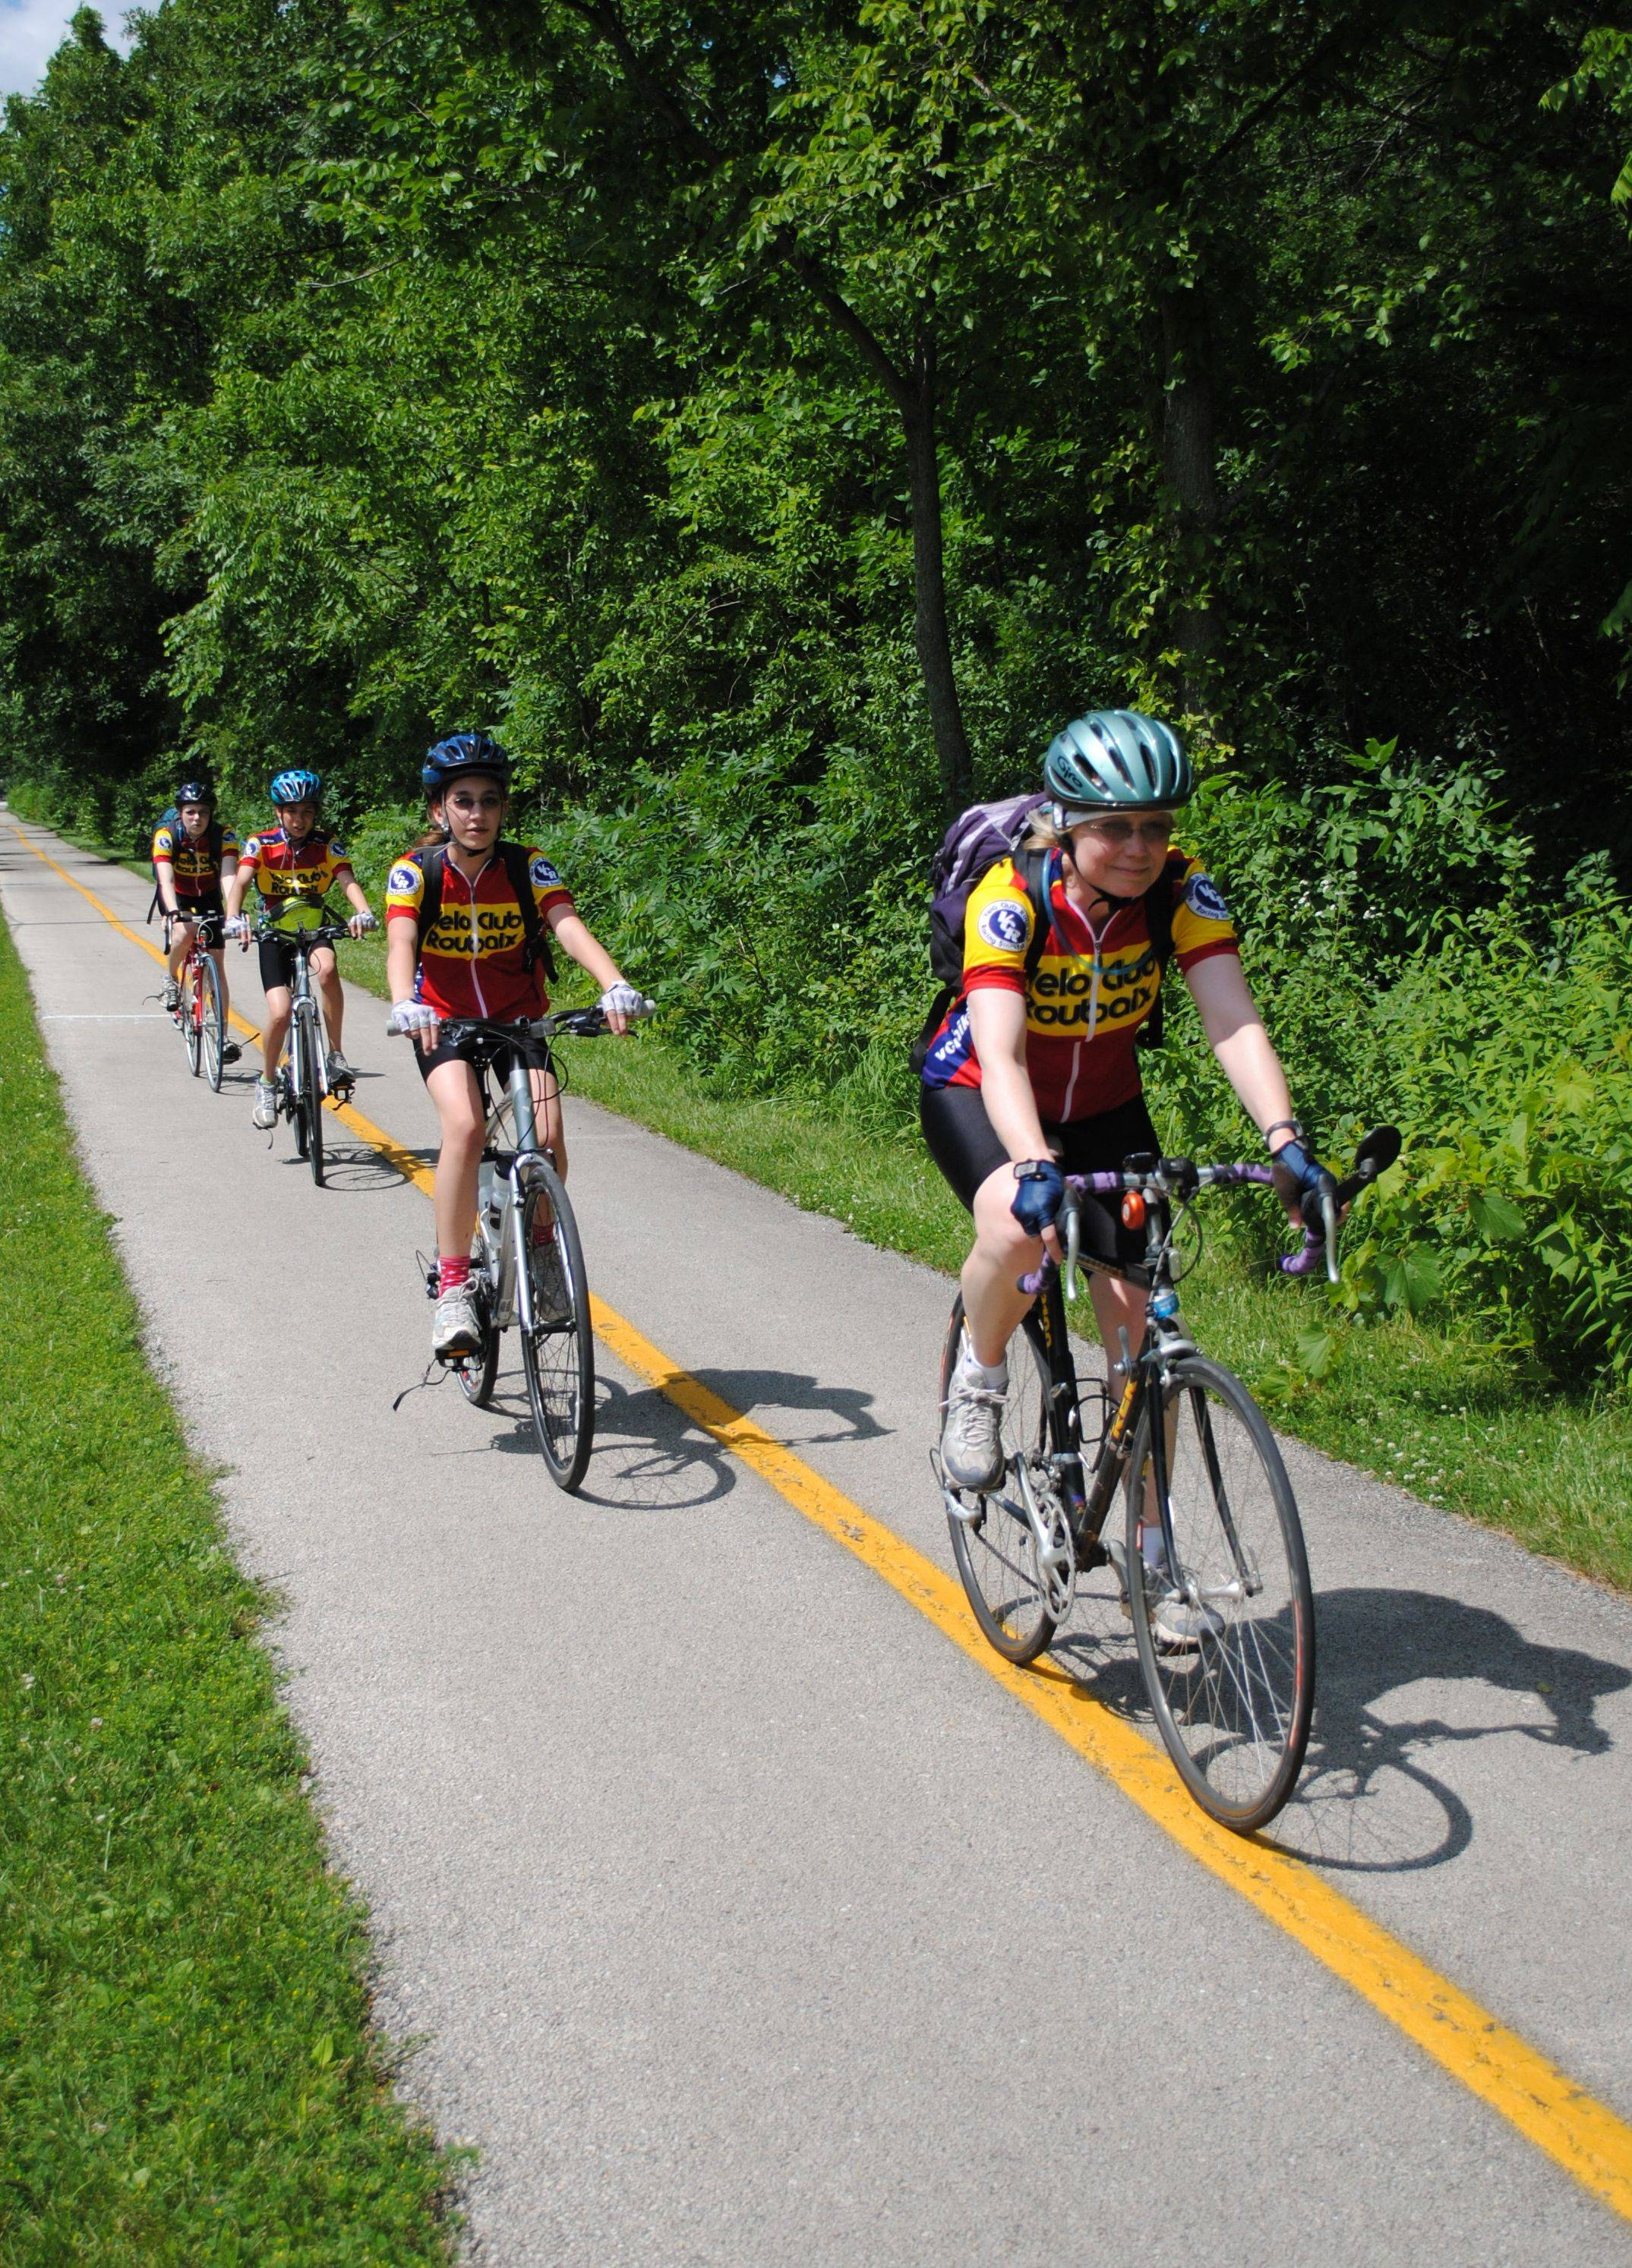 Suburban trails a wheel deal for cycling fans